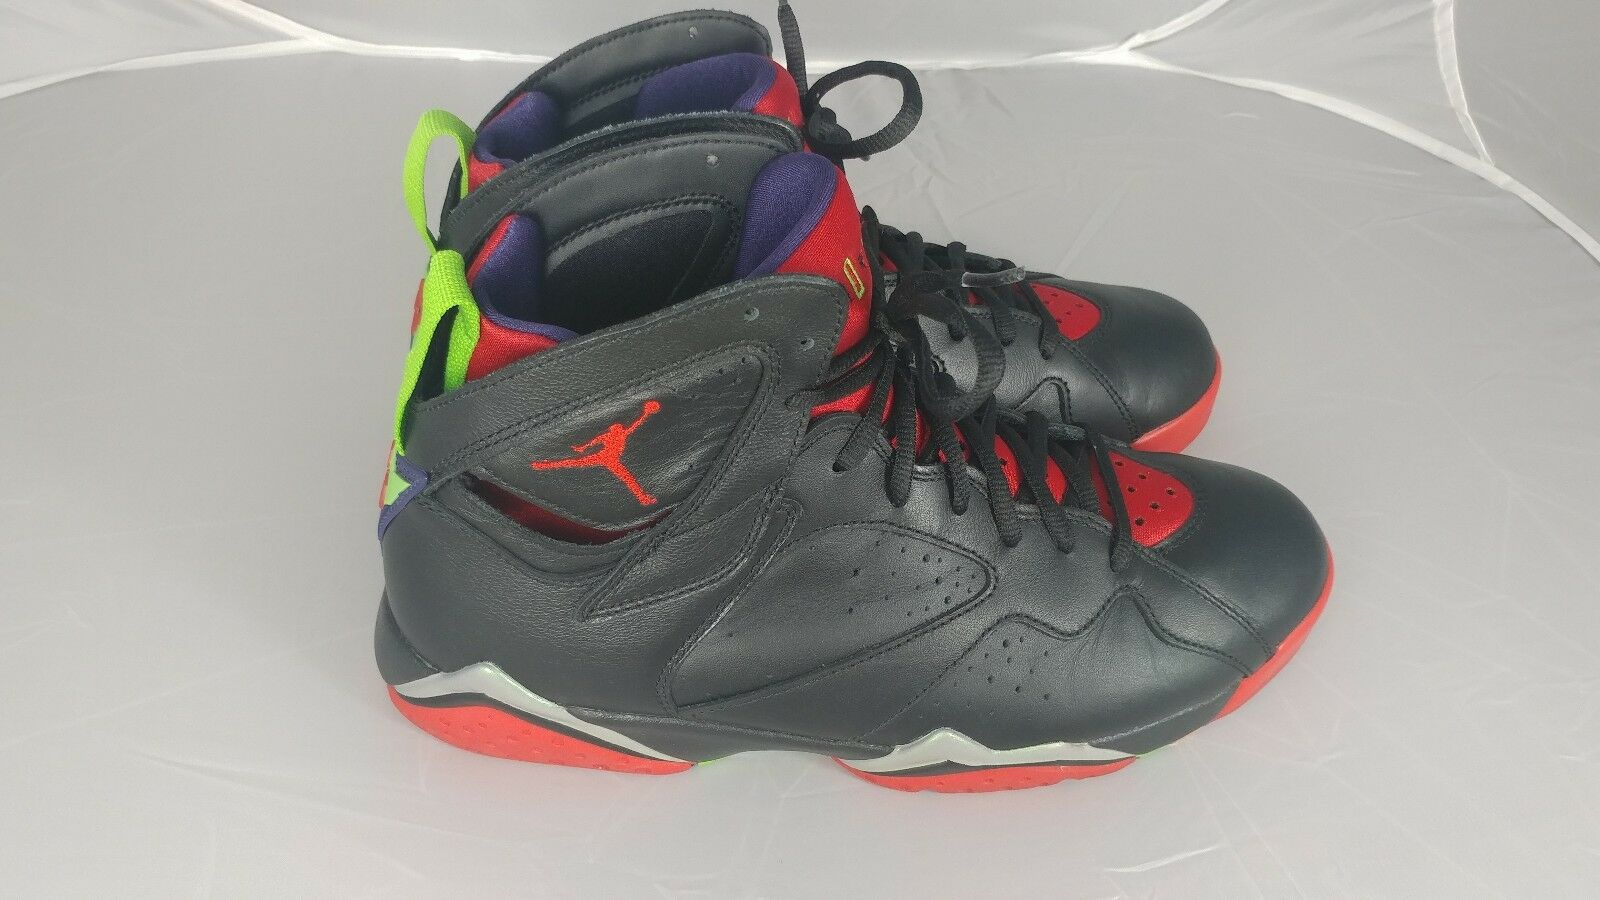 Nike Air Jordan Retro 7 VII Marvin The Martian sz 10